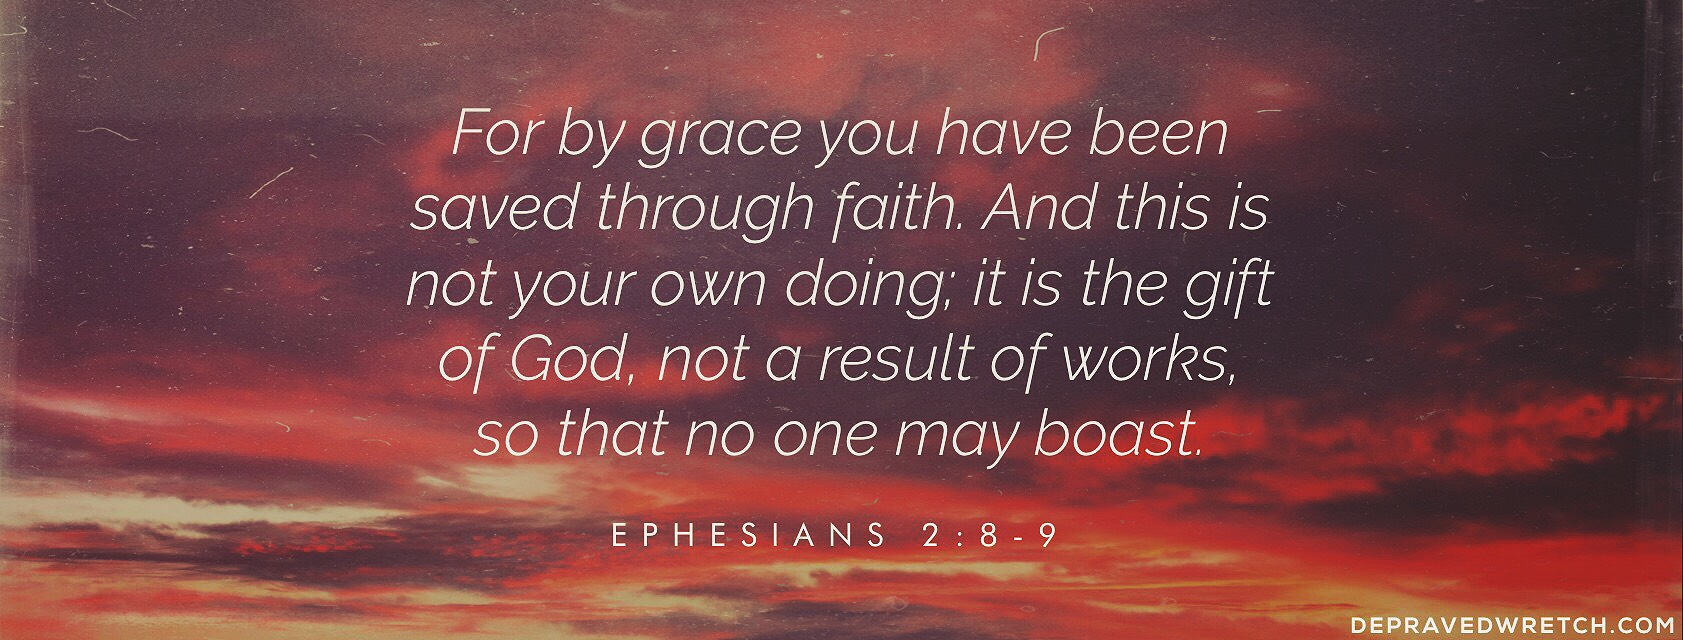 Ephesians 2:8-9 [Christian Facebook Timeline Cover Photo]